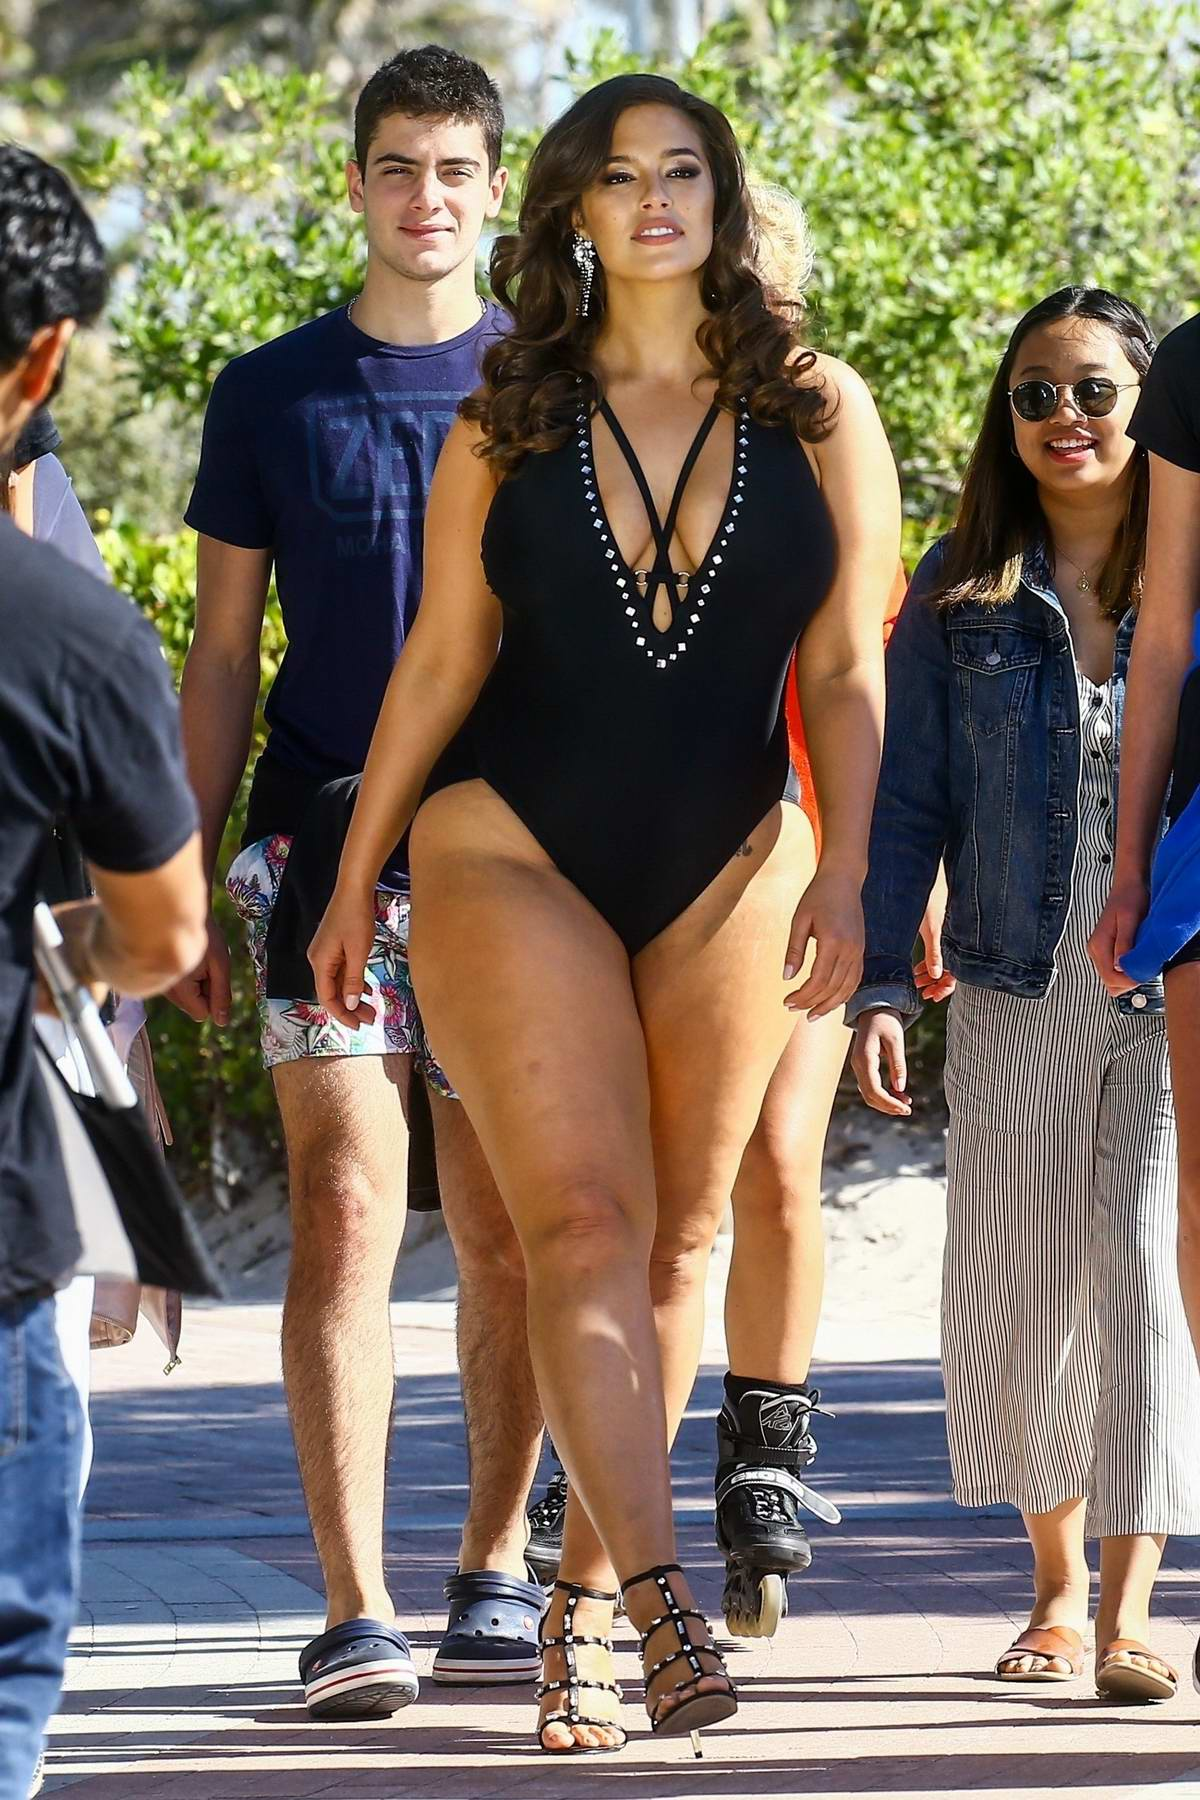 Ashley Graham wears a black swimsuit on the beach during a photoshoot in Miami, Florida - Set 03